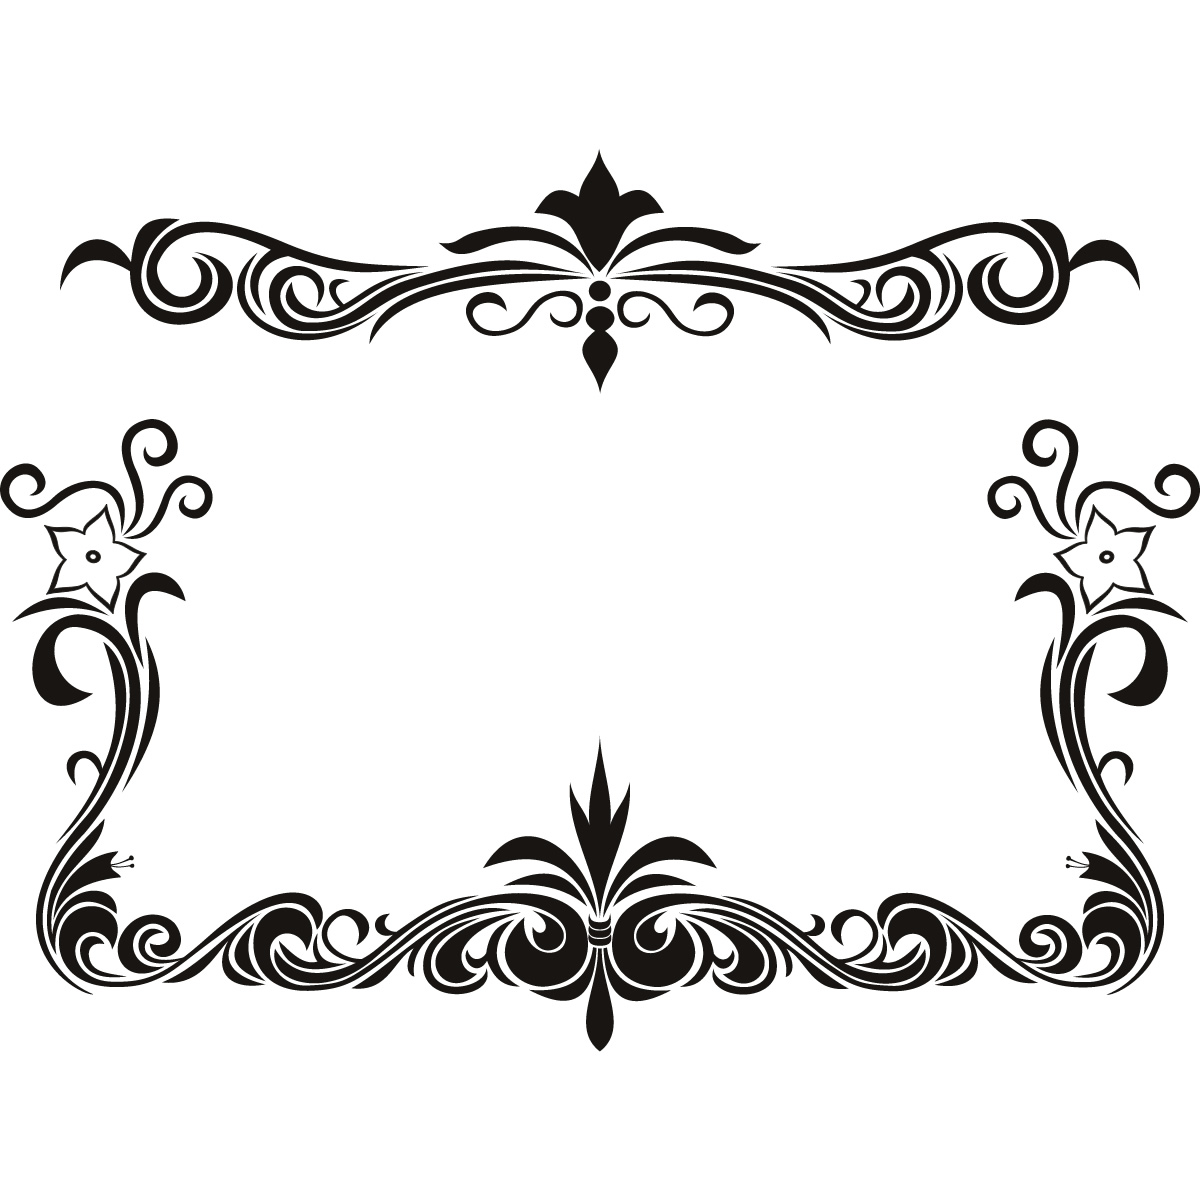 clipart line flower - photo #22